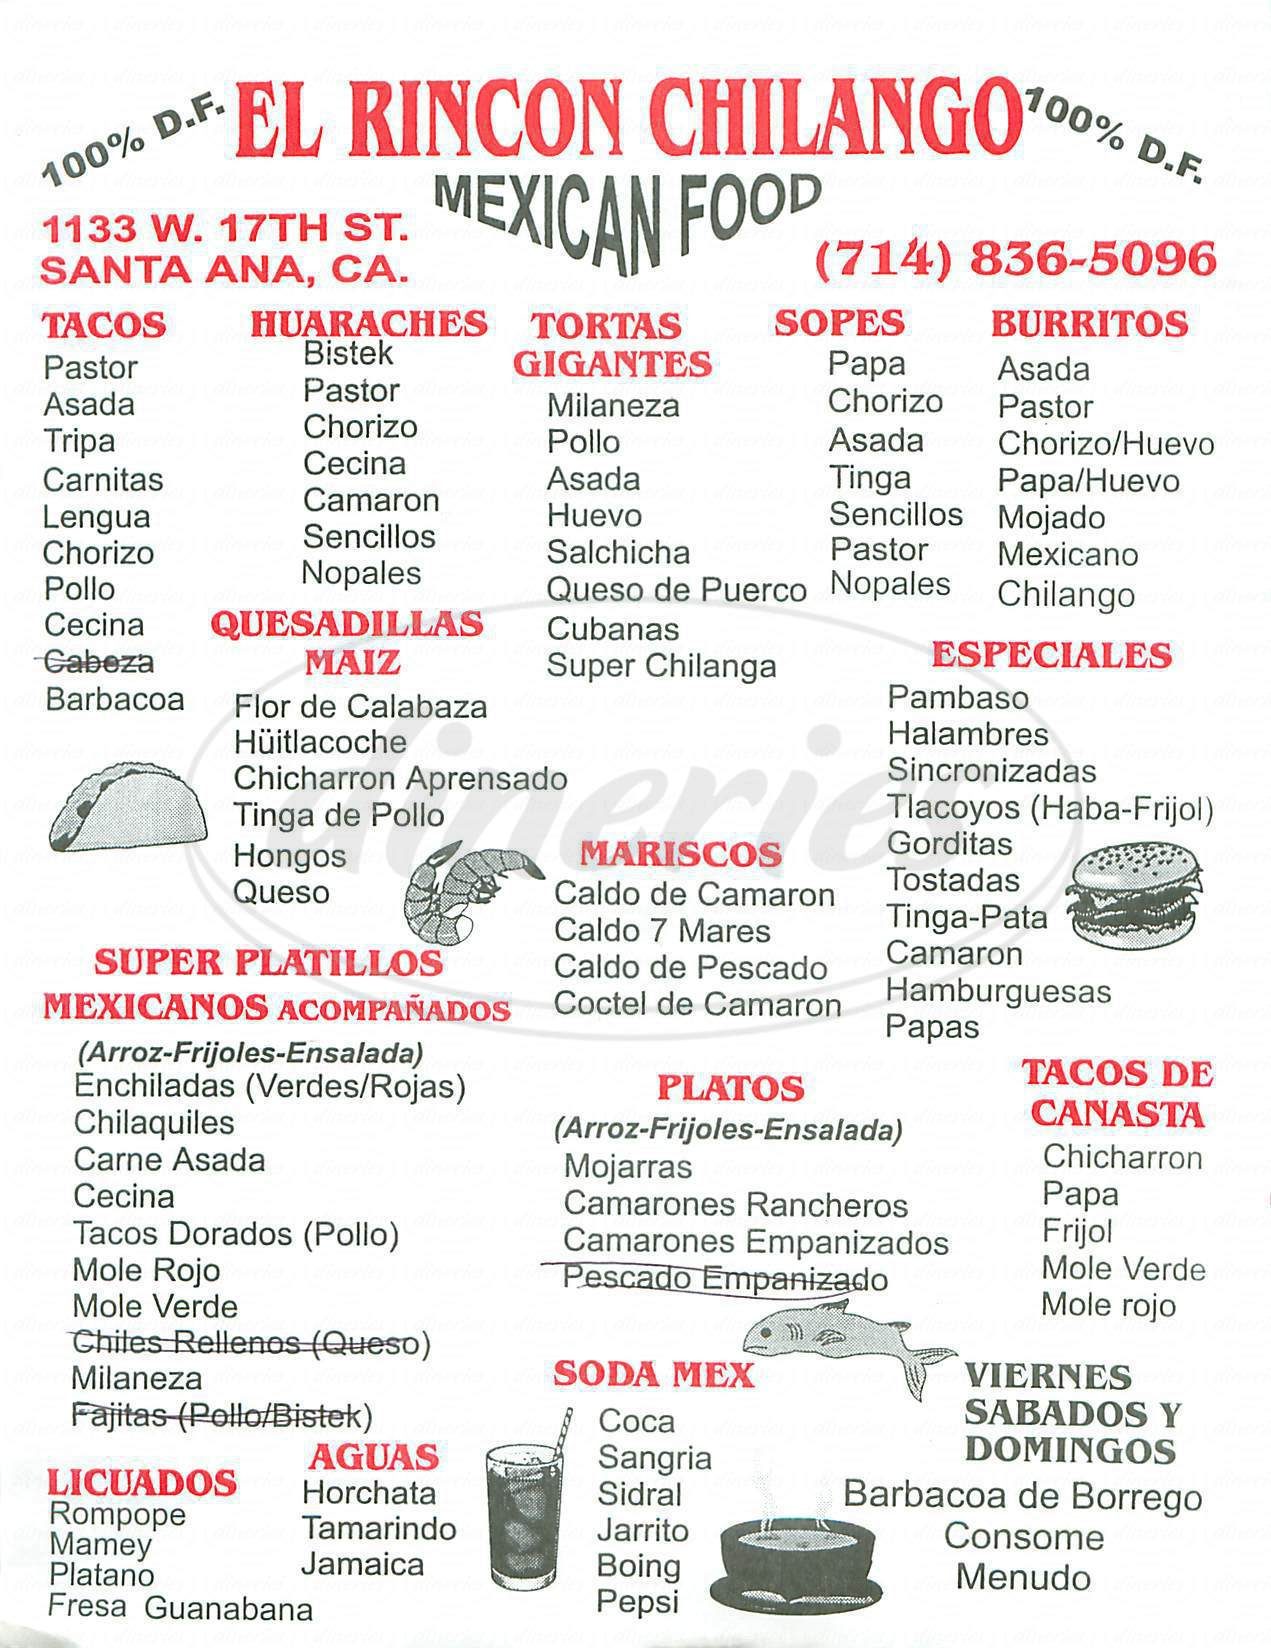 menu for El Rincon Chilango